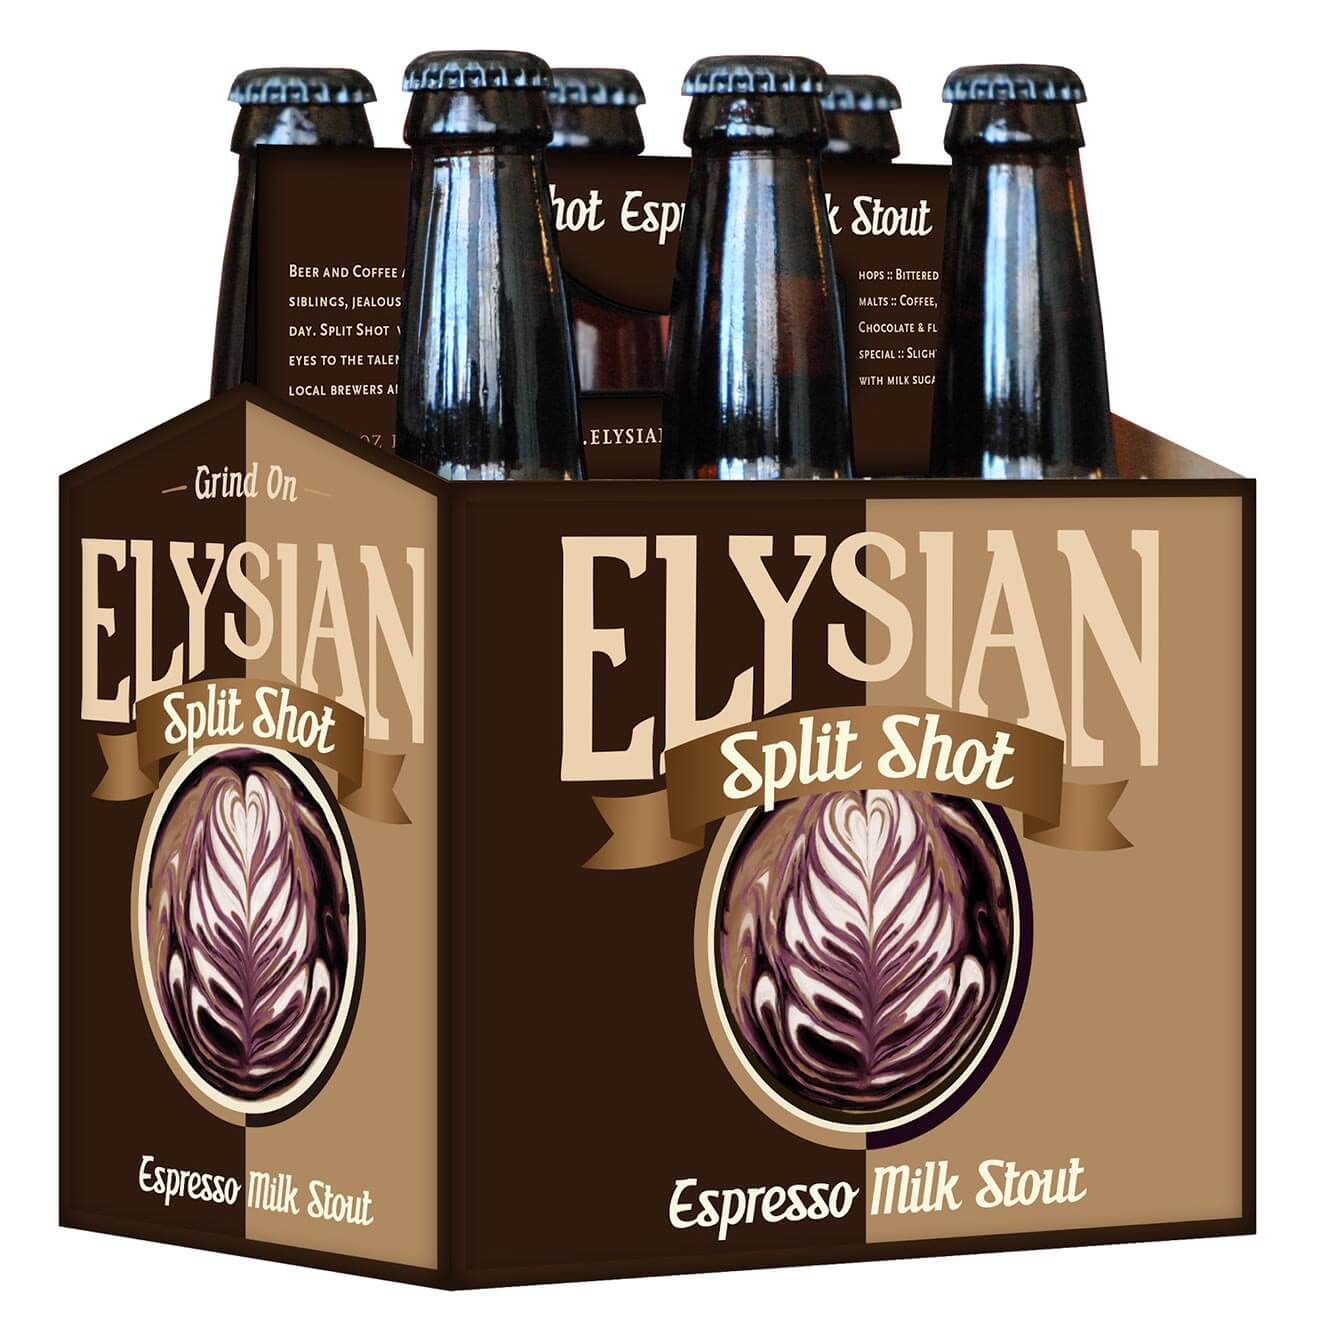 Elysian Split Shot Espresso Milk Stout 6-pack